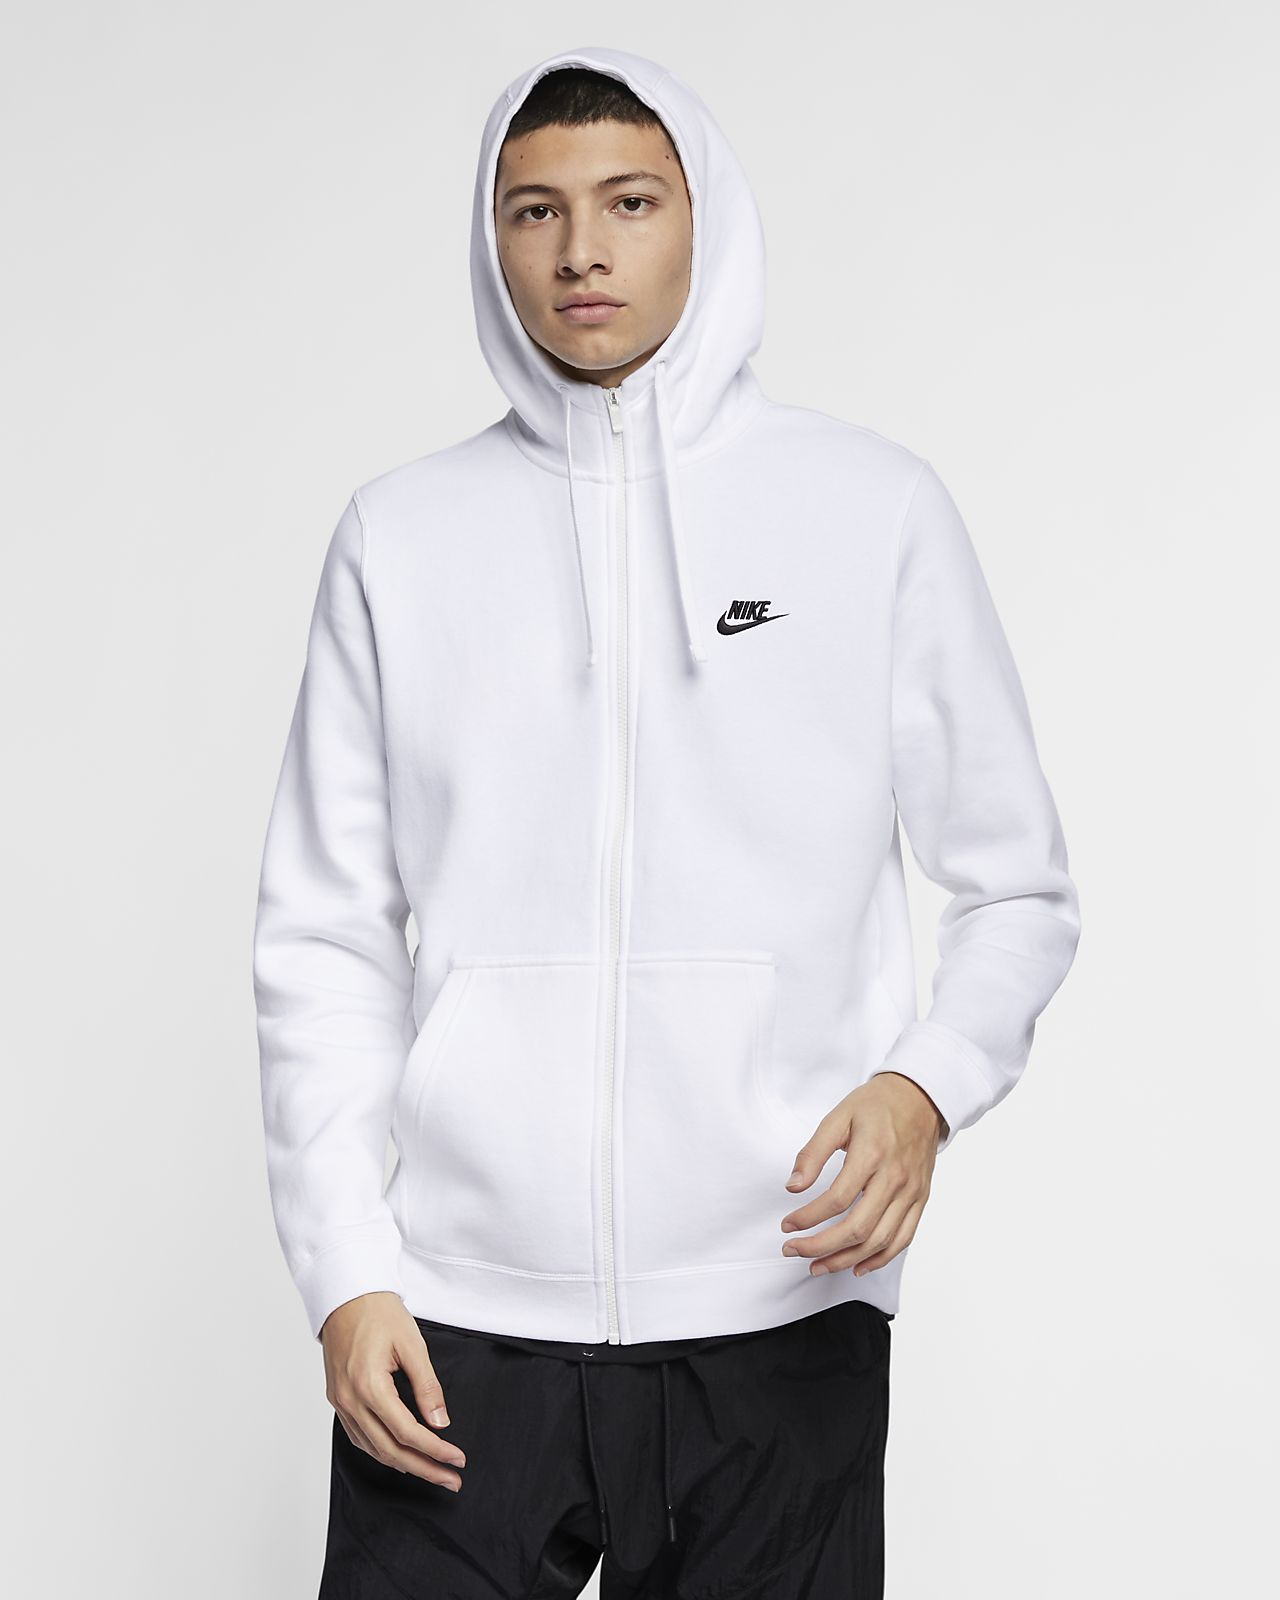 5c0338202d46 Nike Sportswear Club Fleece Men s Hoodie. Nike.com